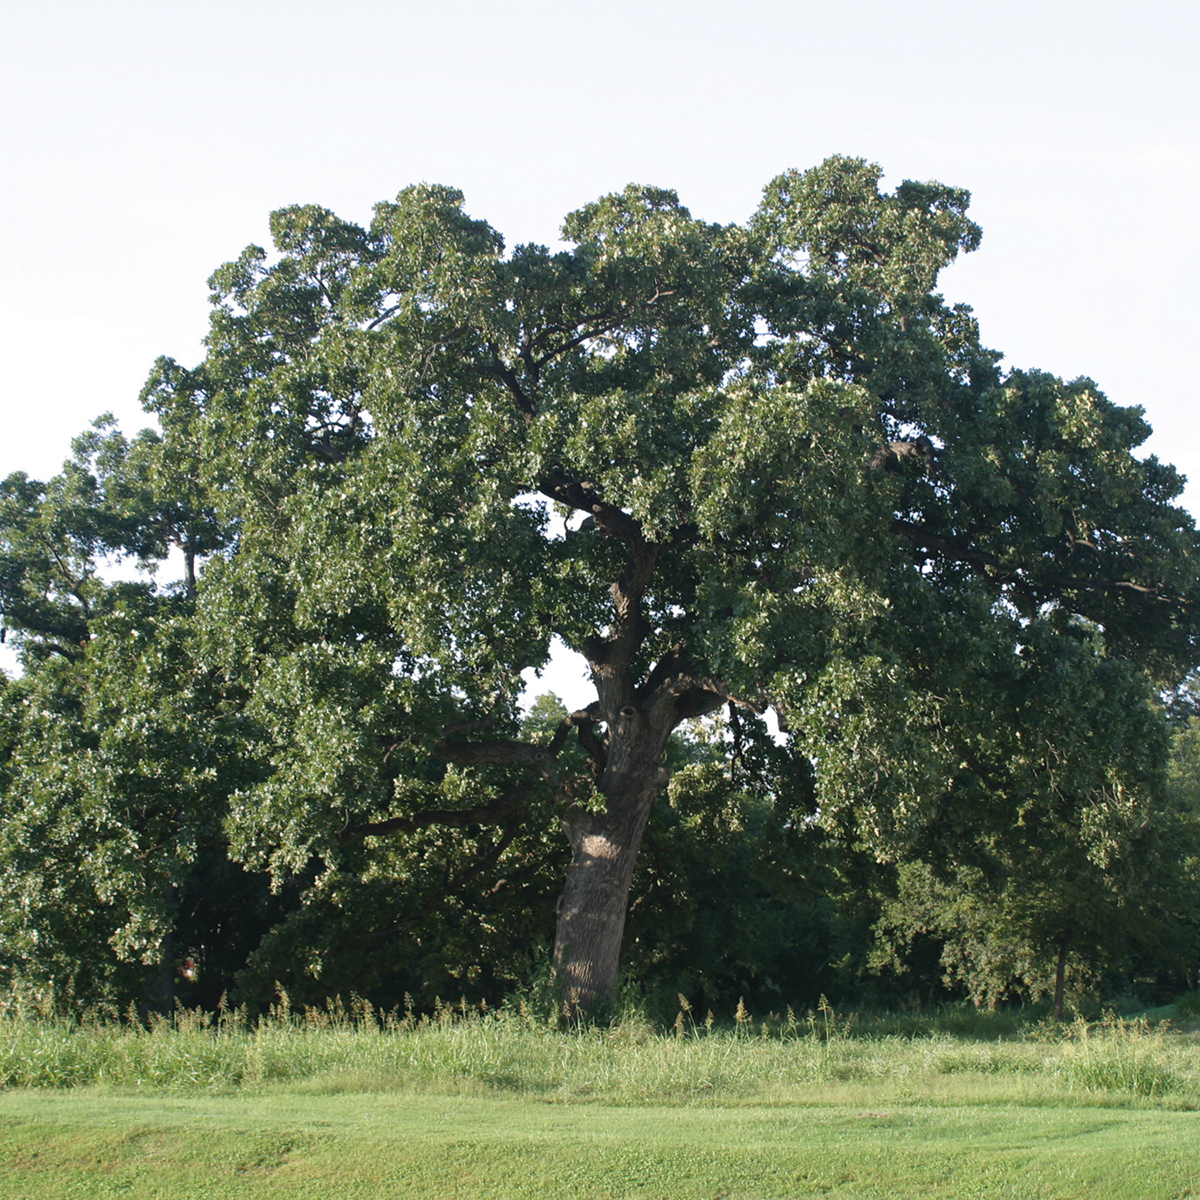 burr oak Color/appearance: has a light to medium brown color, though there can be a fair amount of variation in color conversely, red oak tends to be slightly redder, but is by no means a reliable method of determining the type of oak.